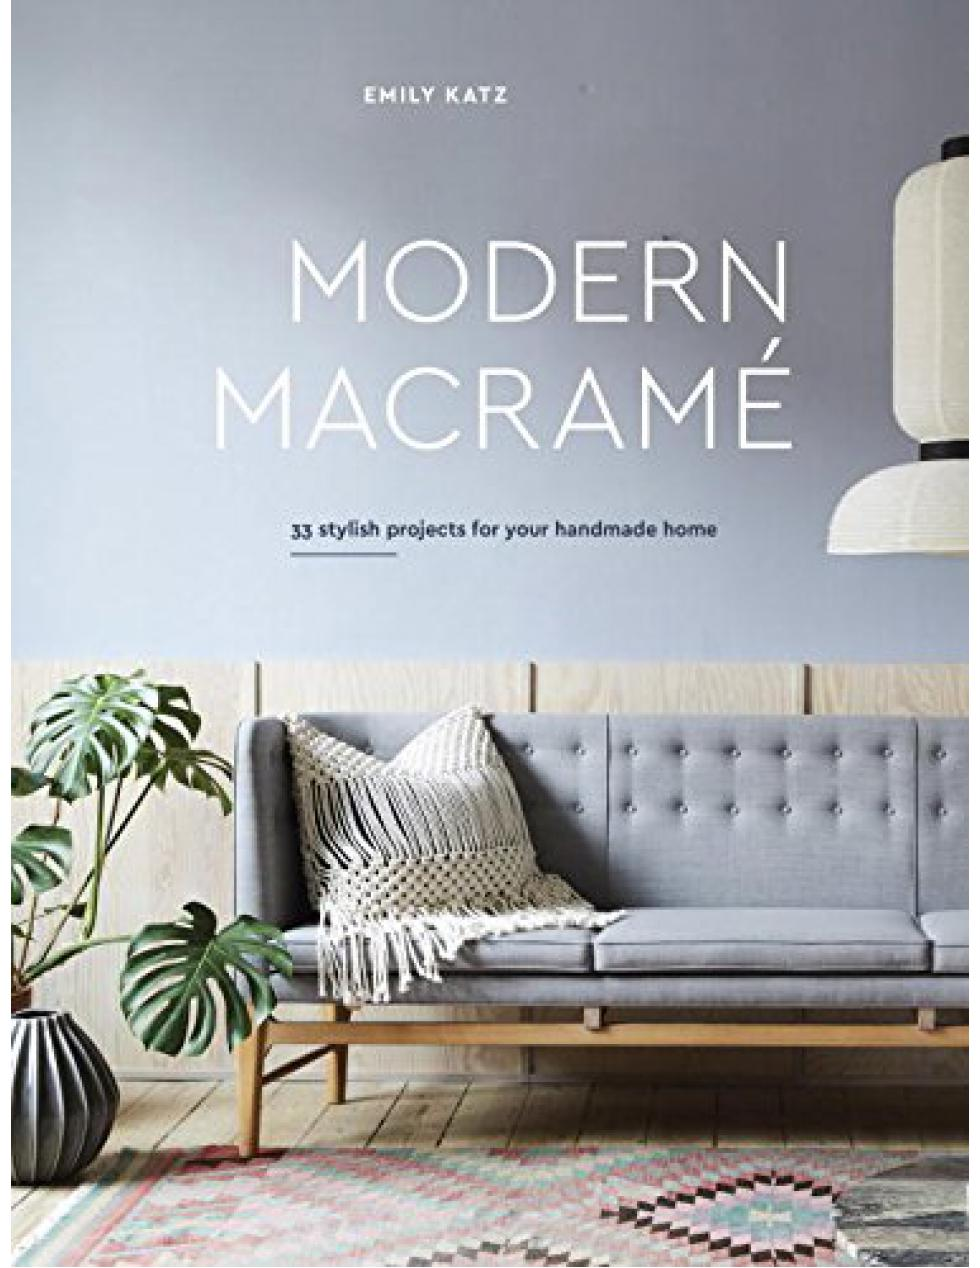 MODERN MACRAMÉ 33 Stylish Projects for Your Handmade Home - Emily Katz - Boekenmarkt de Markies